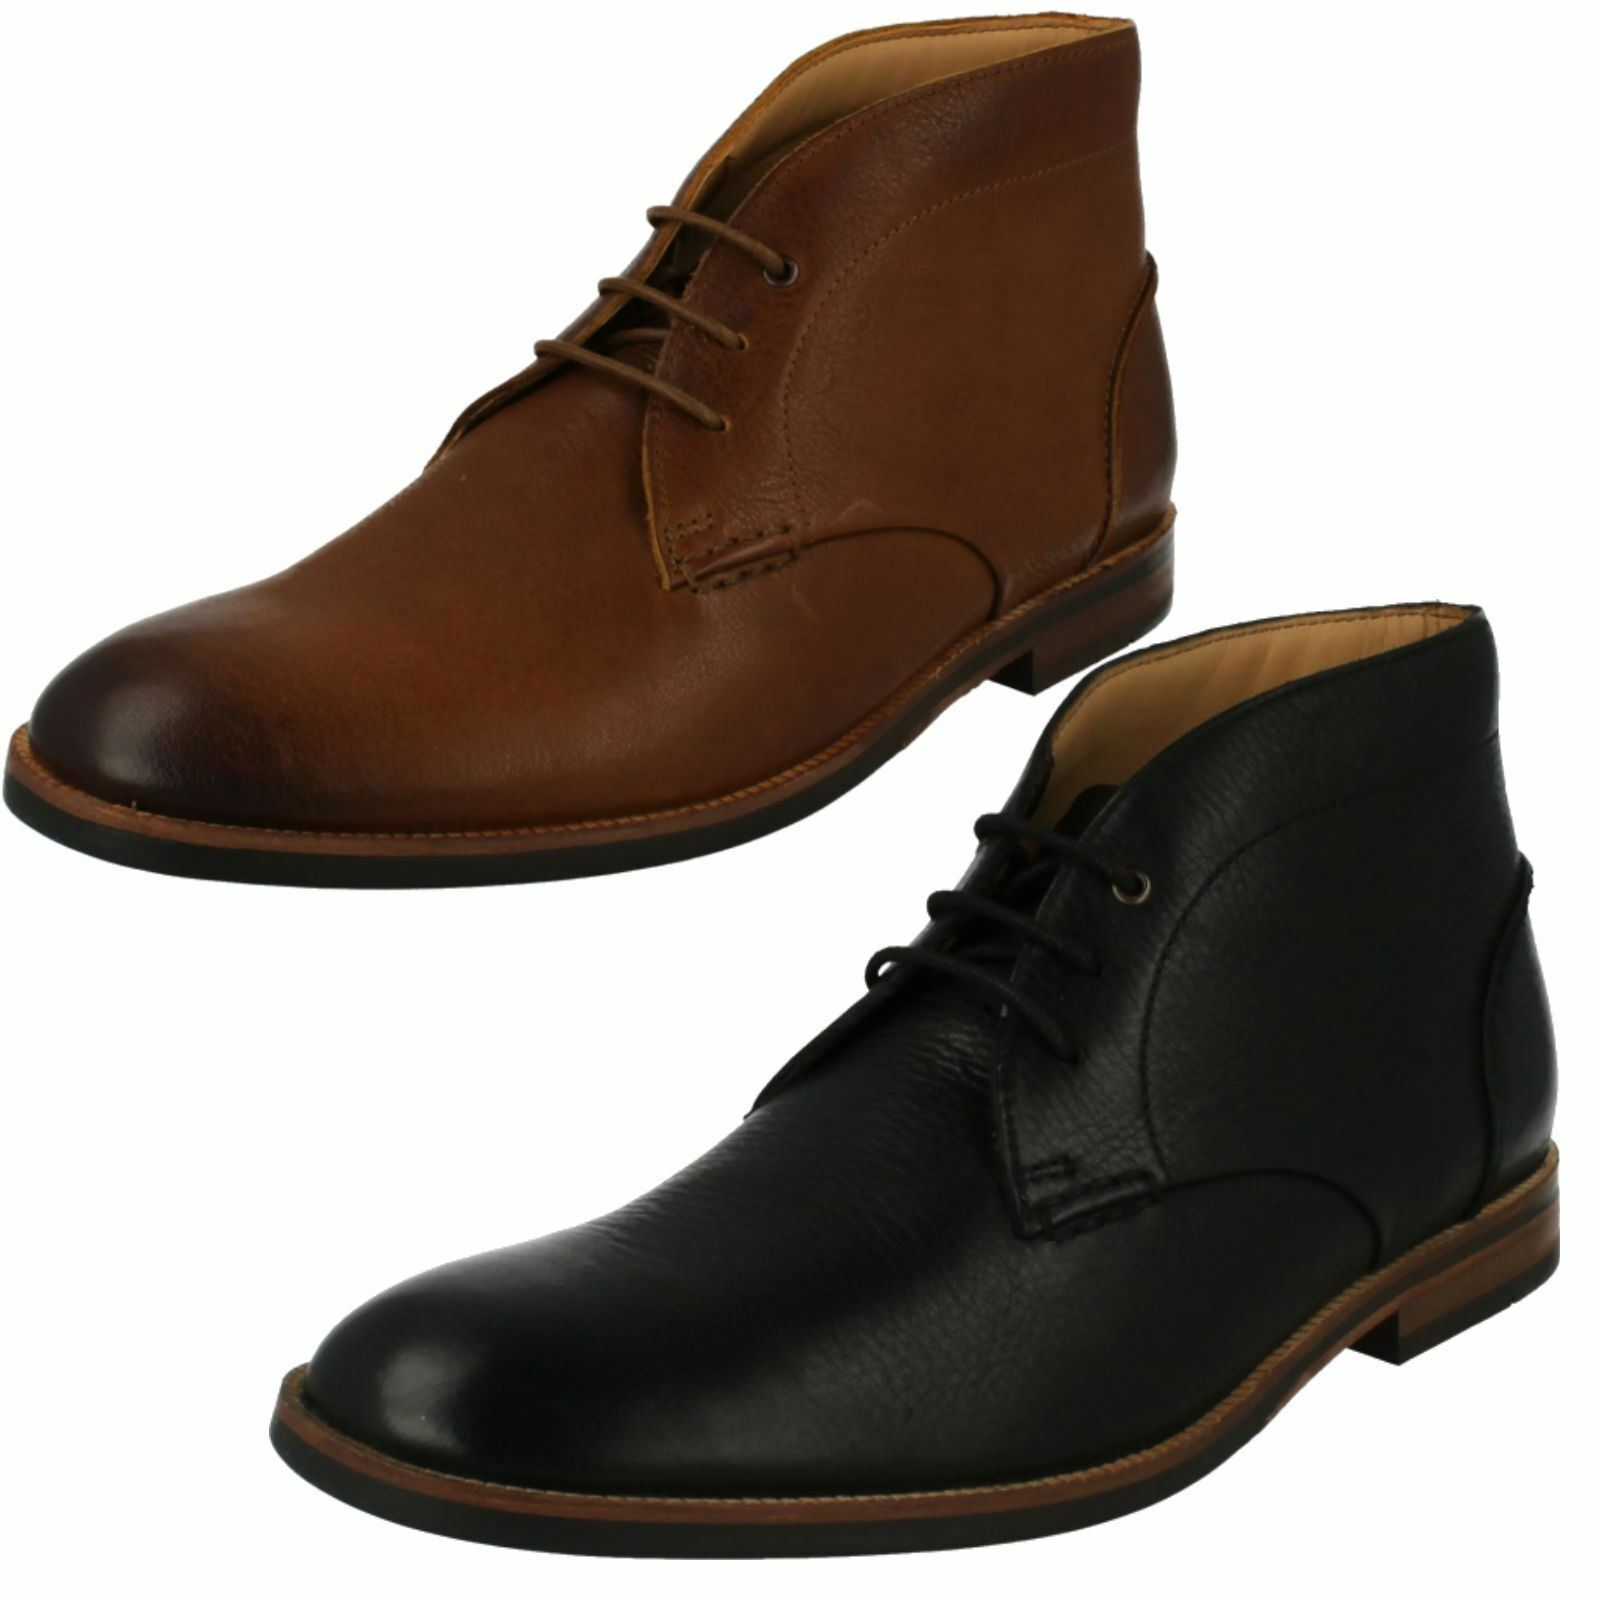 Mens Clarks Smart Lace Up Ankle Boots 'Broyd Mid'